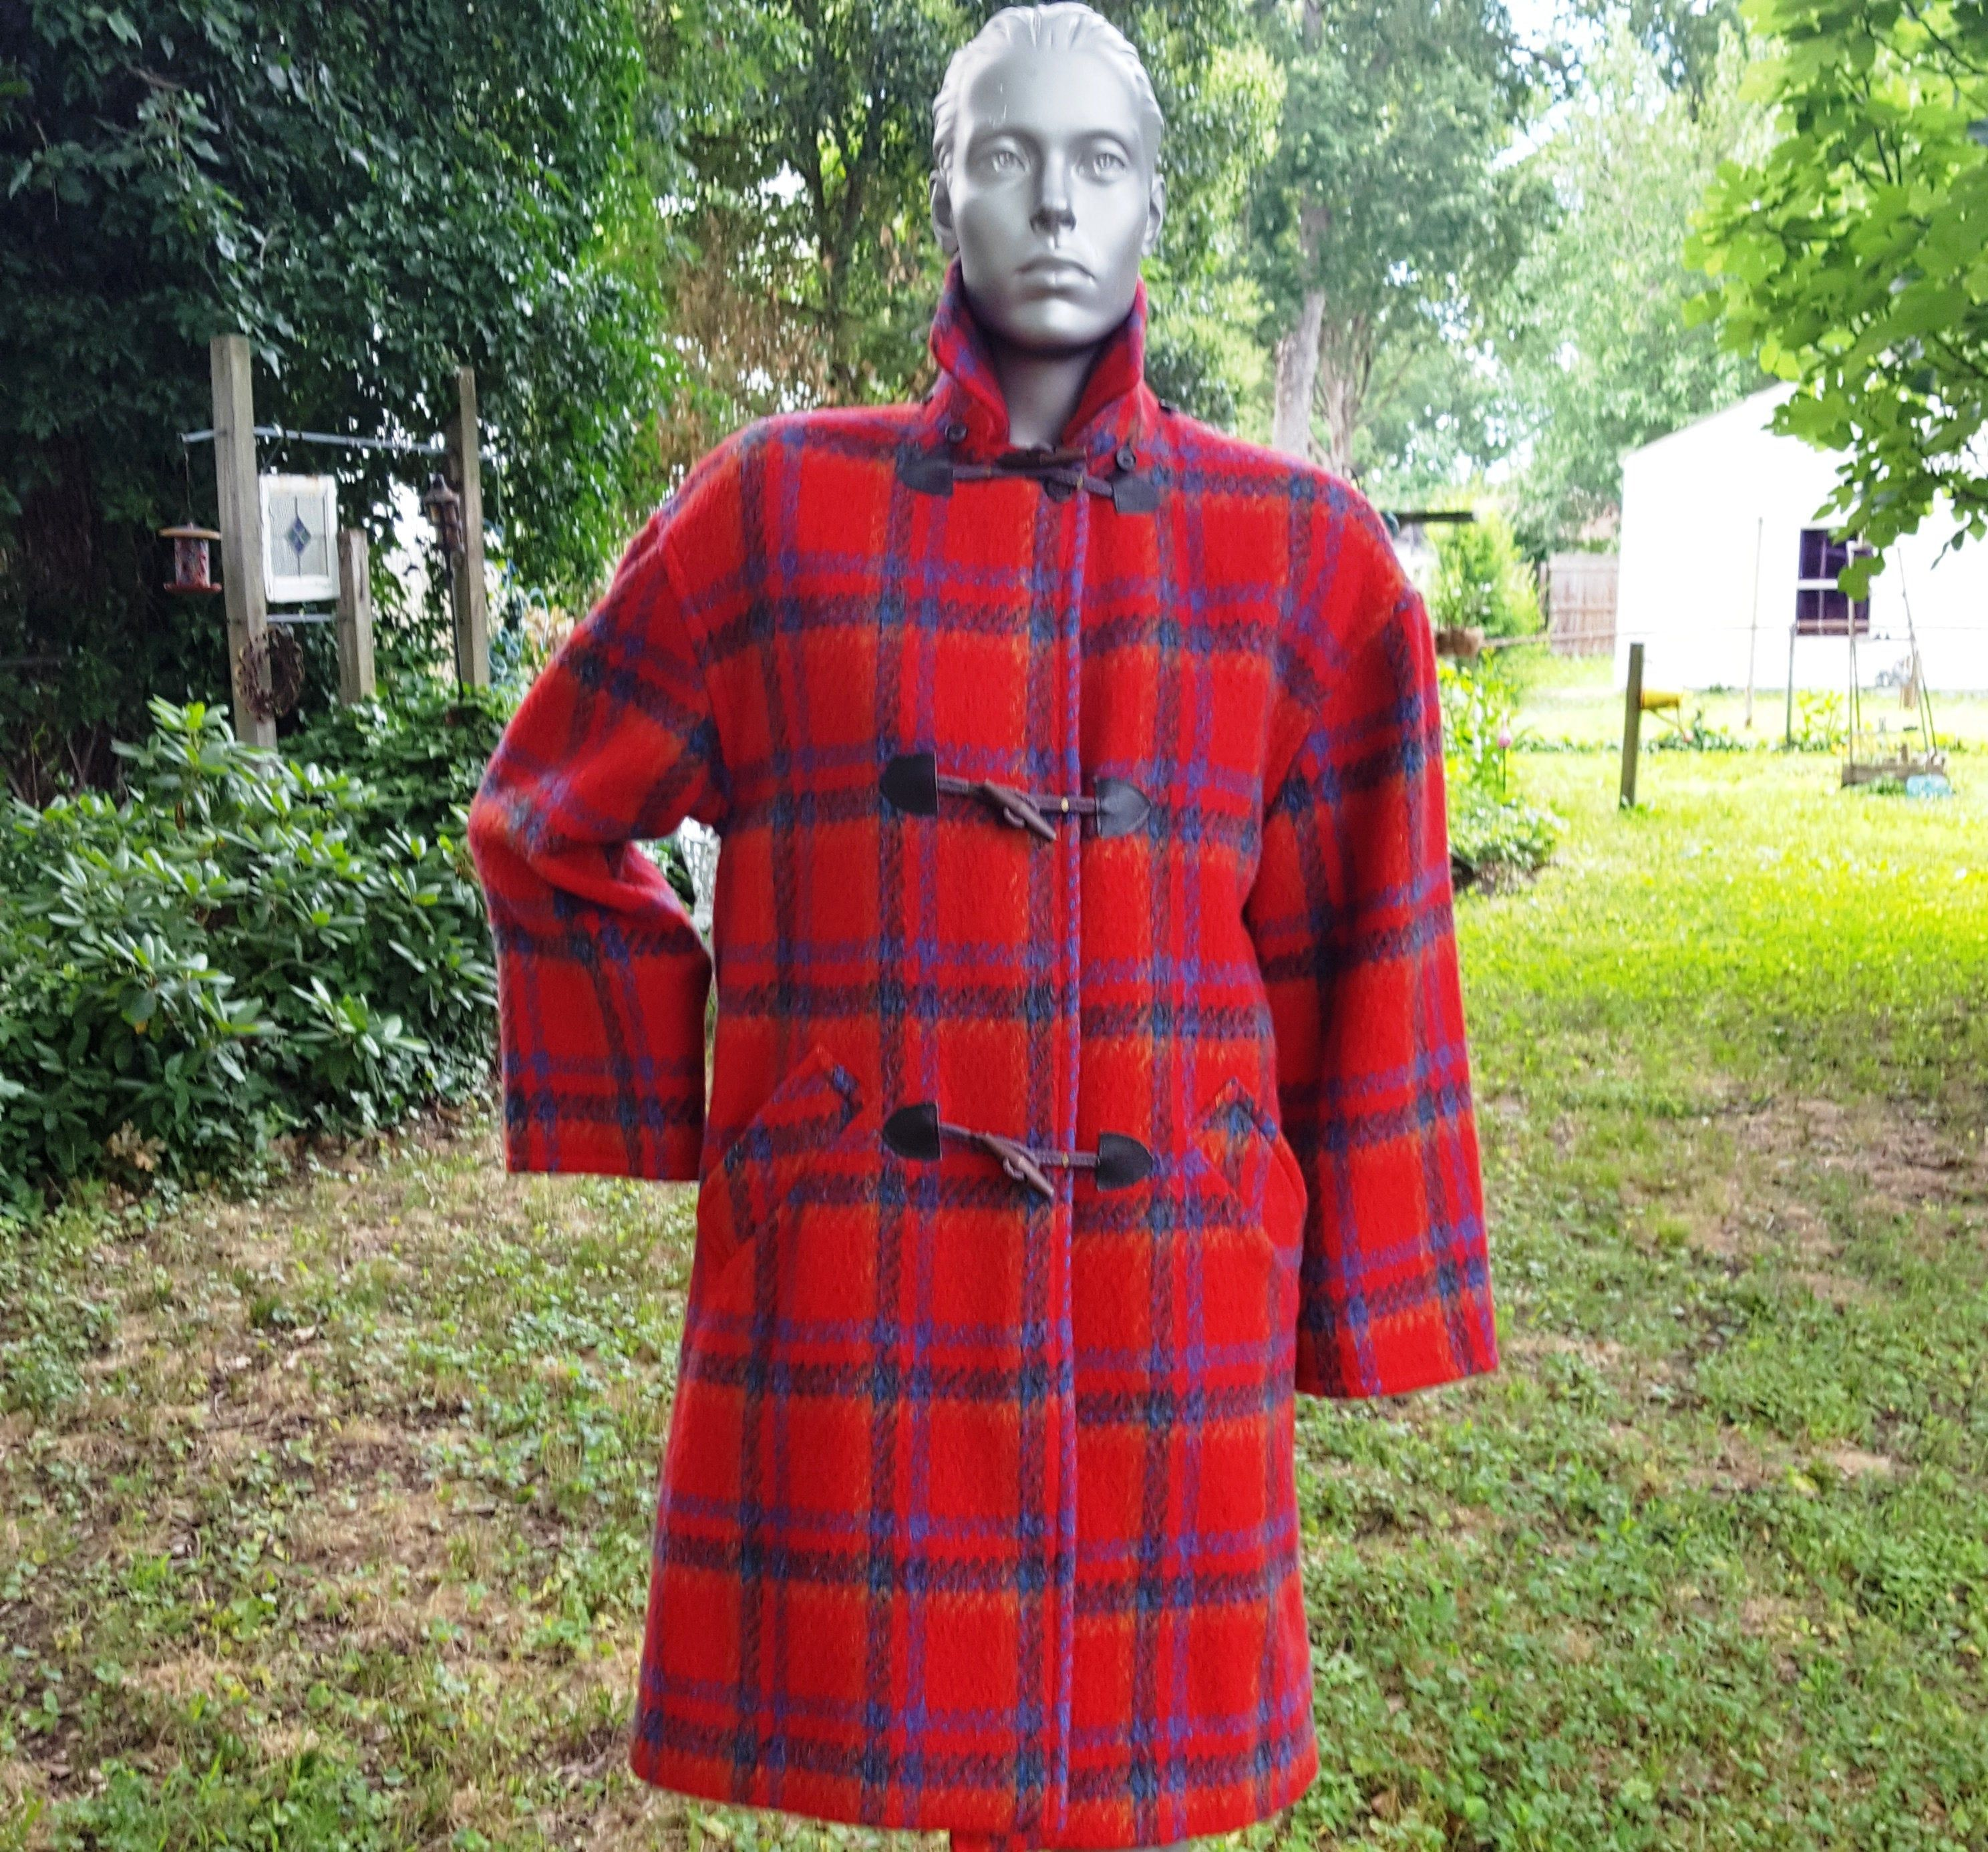 Double-Breasted Red Heather Green Black Tartan Knee-Length Dress 12 UK Size 8 US Scotch Plaid Dress with Black Velvet Collar and Cuffs